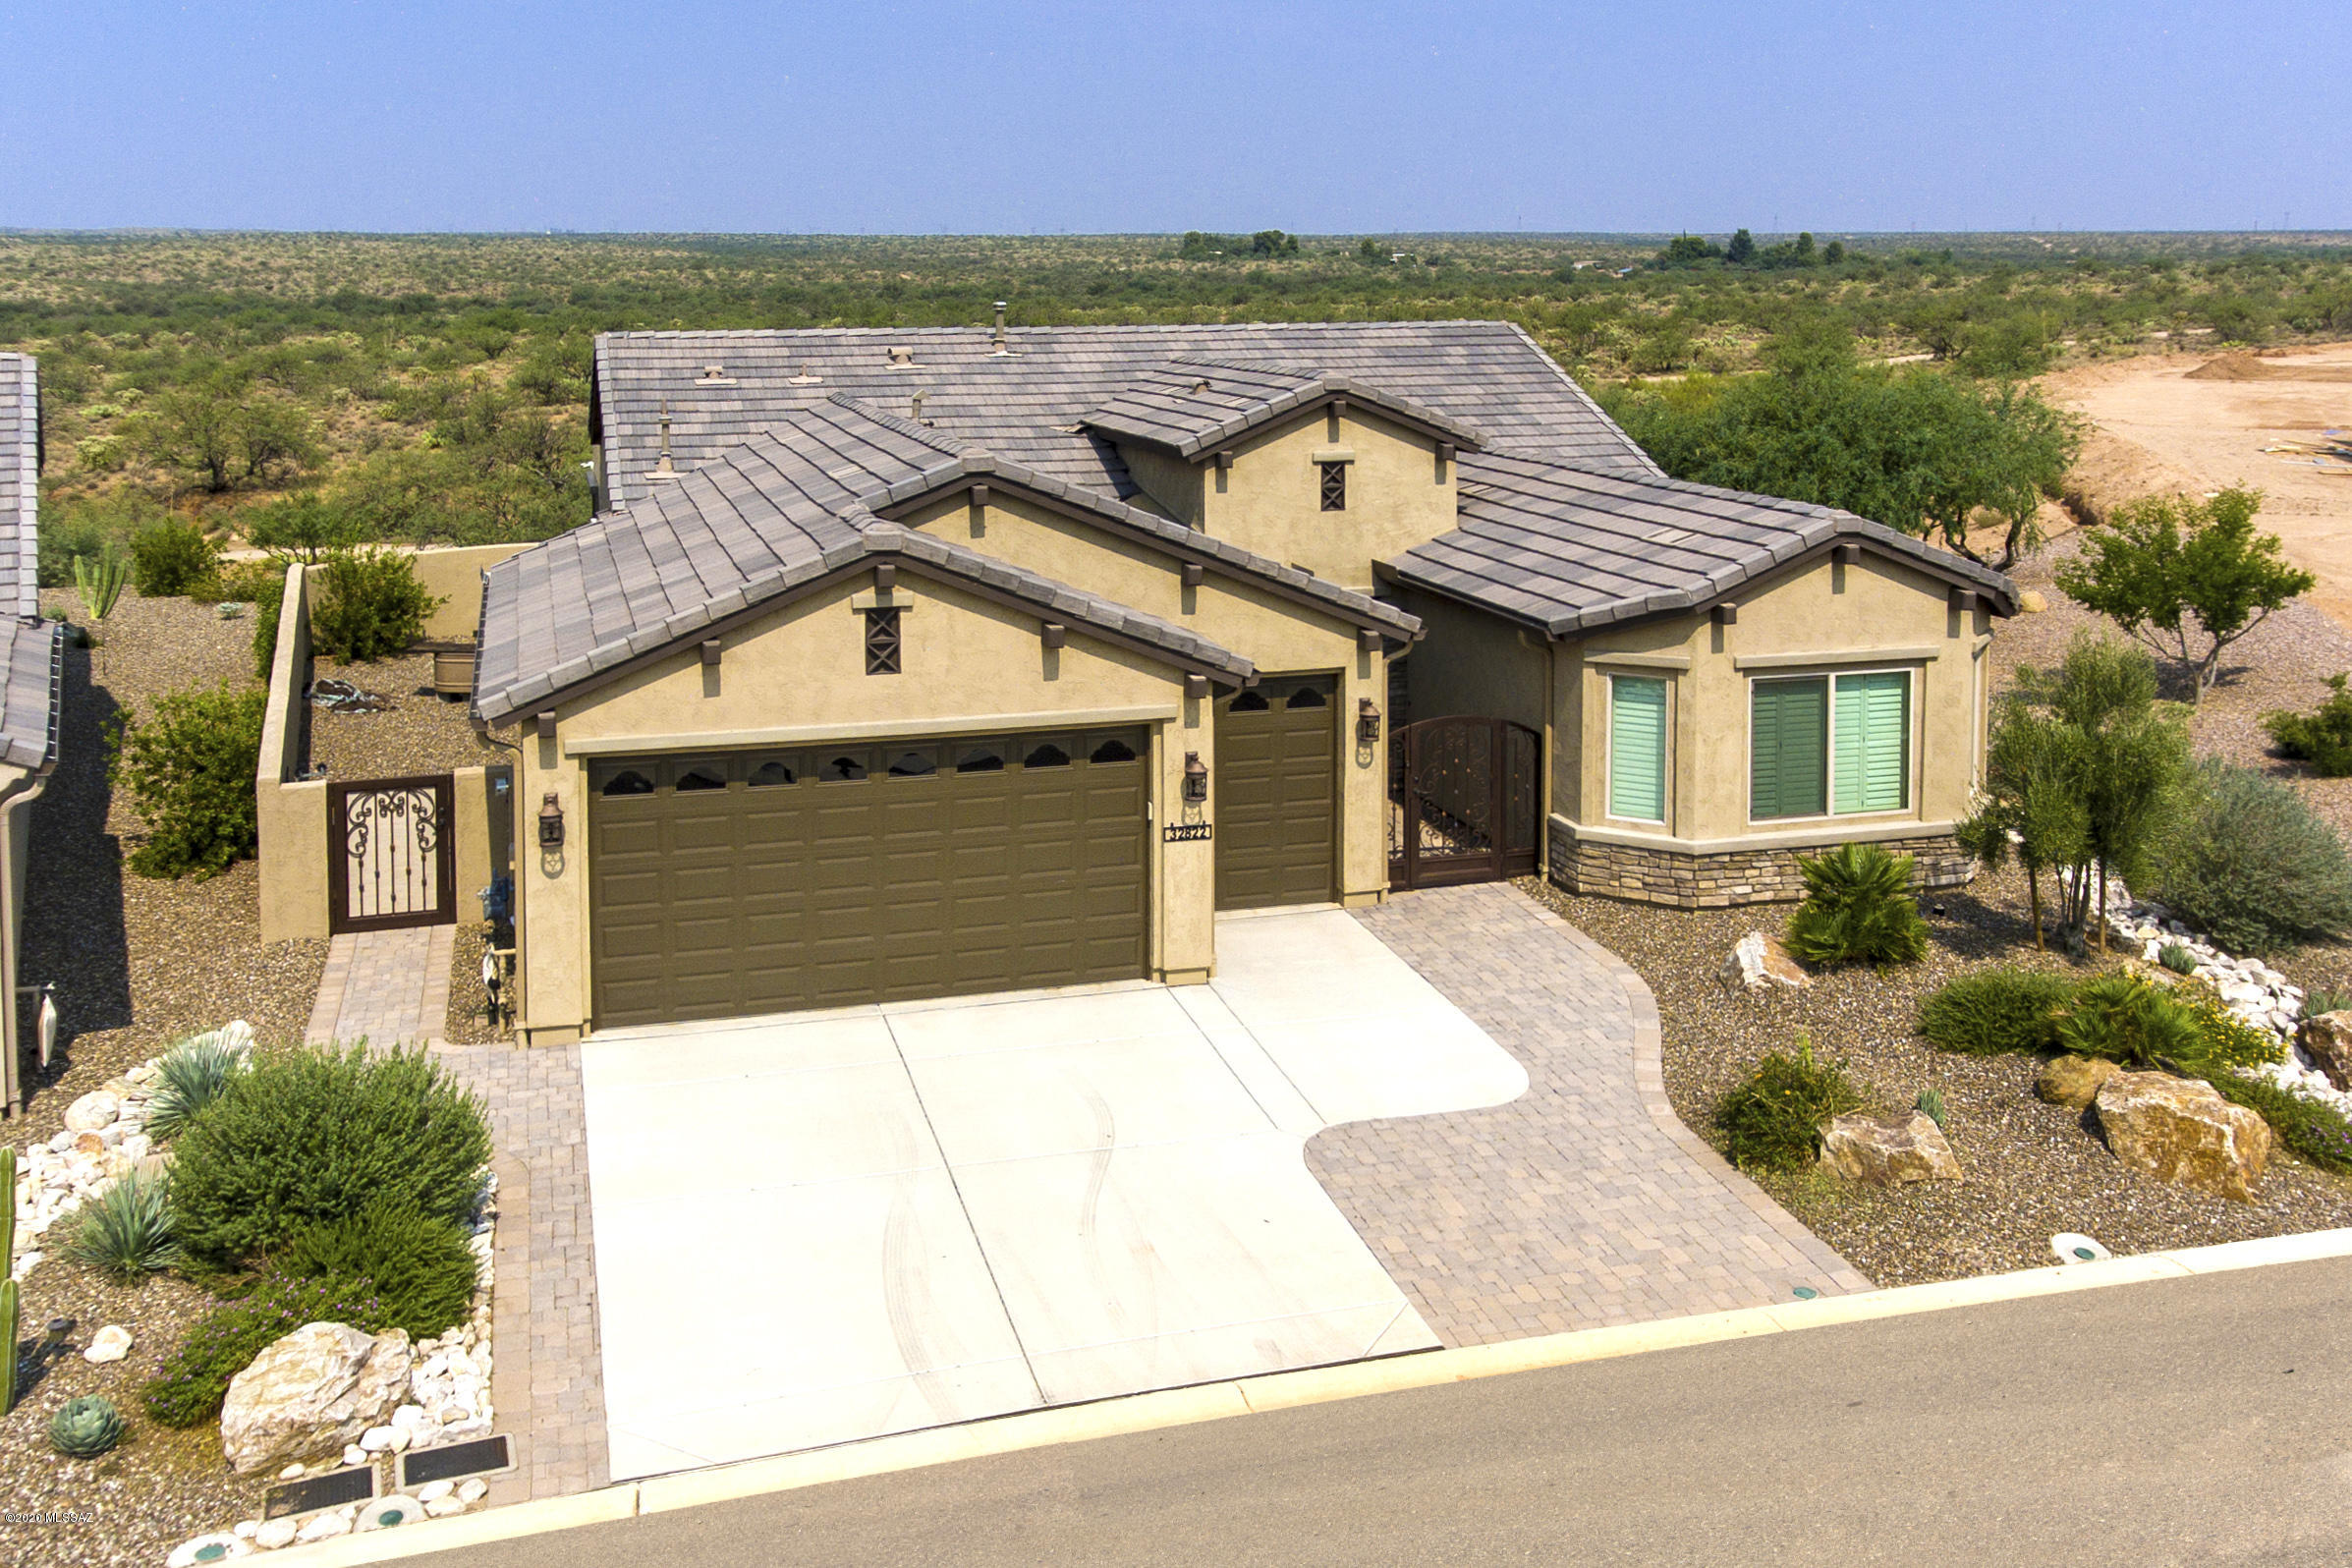 Photo of 32822 S Cattle Trail, Oracle, AZ 85623